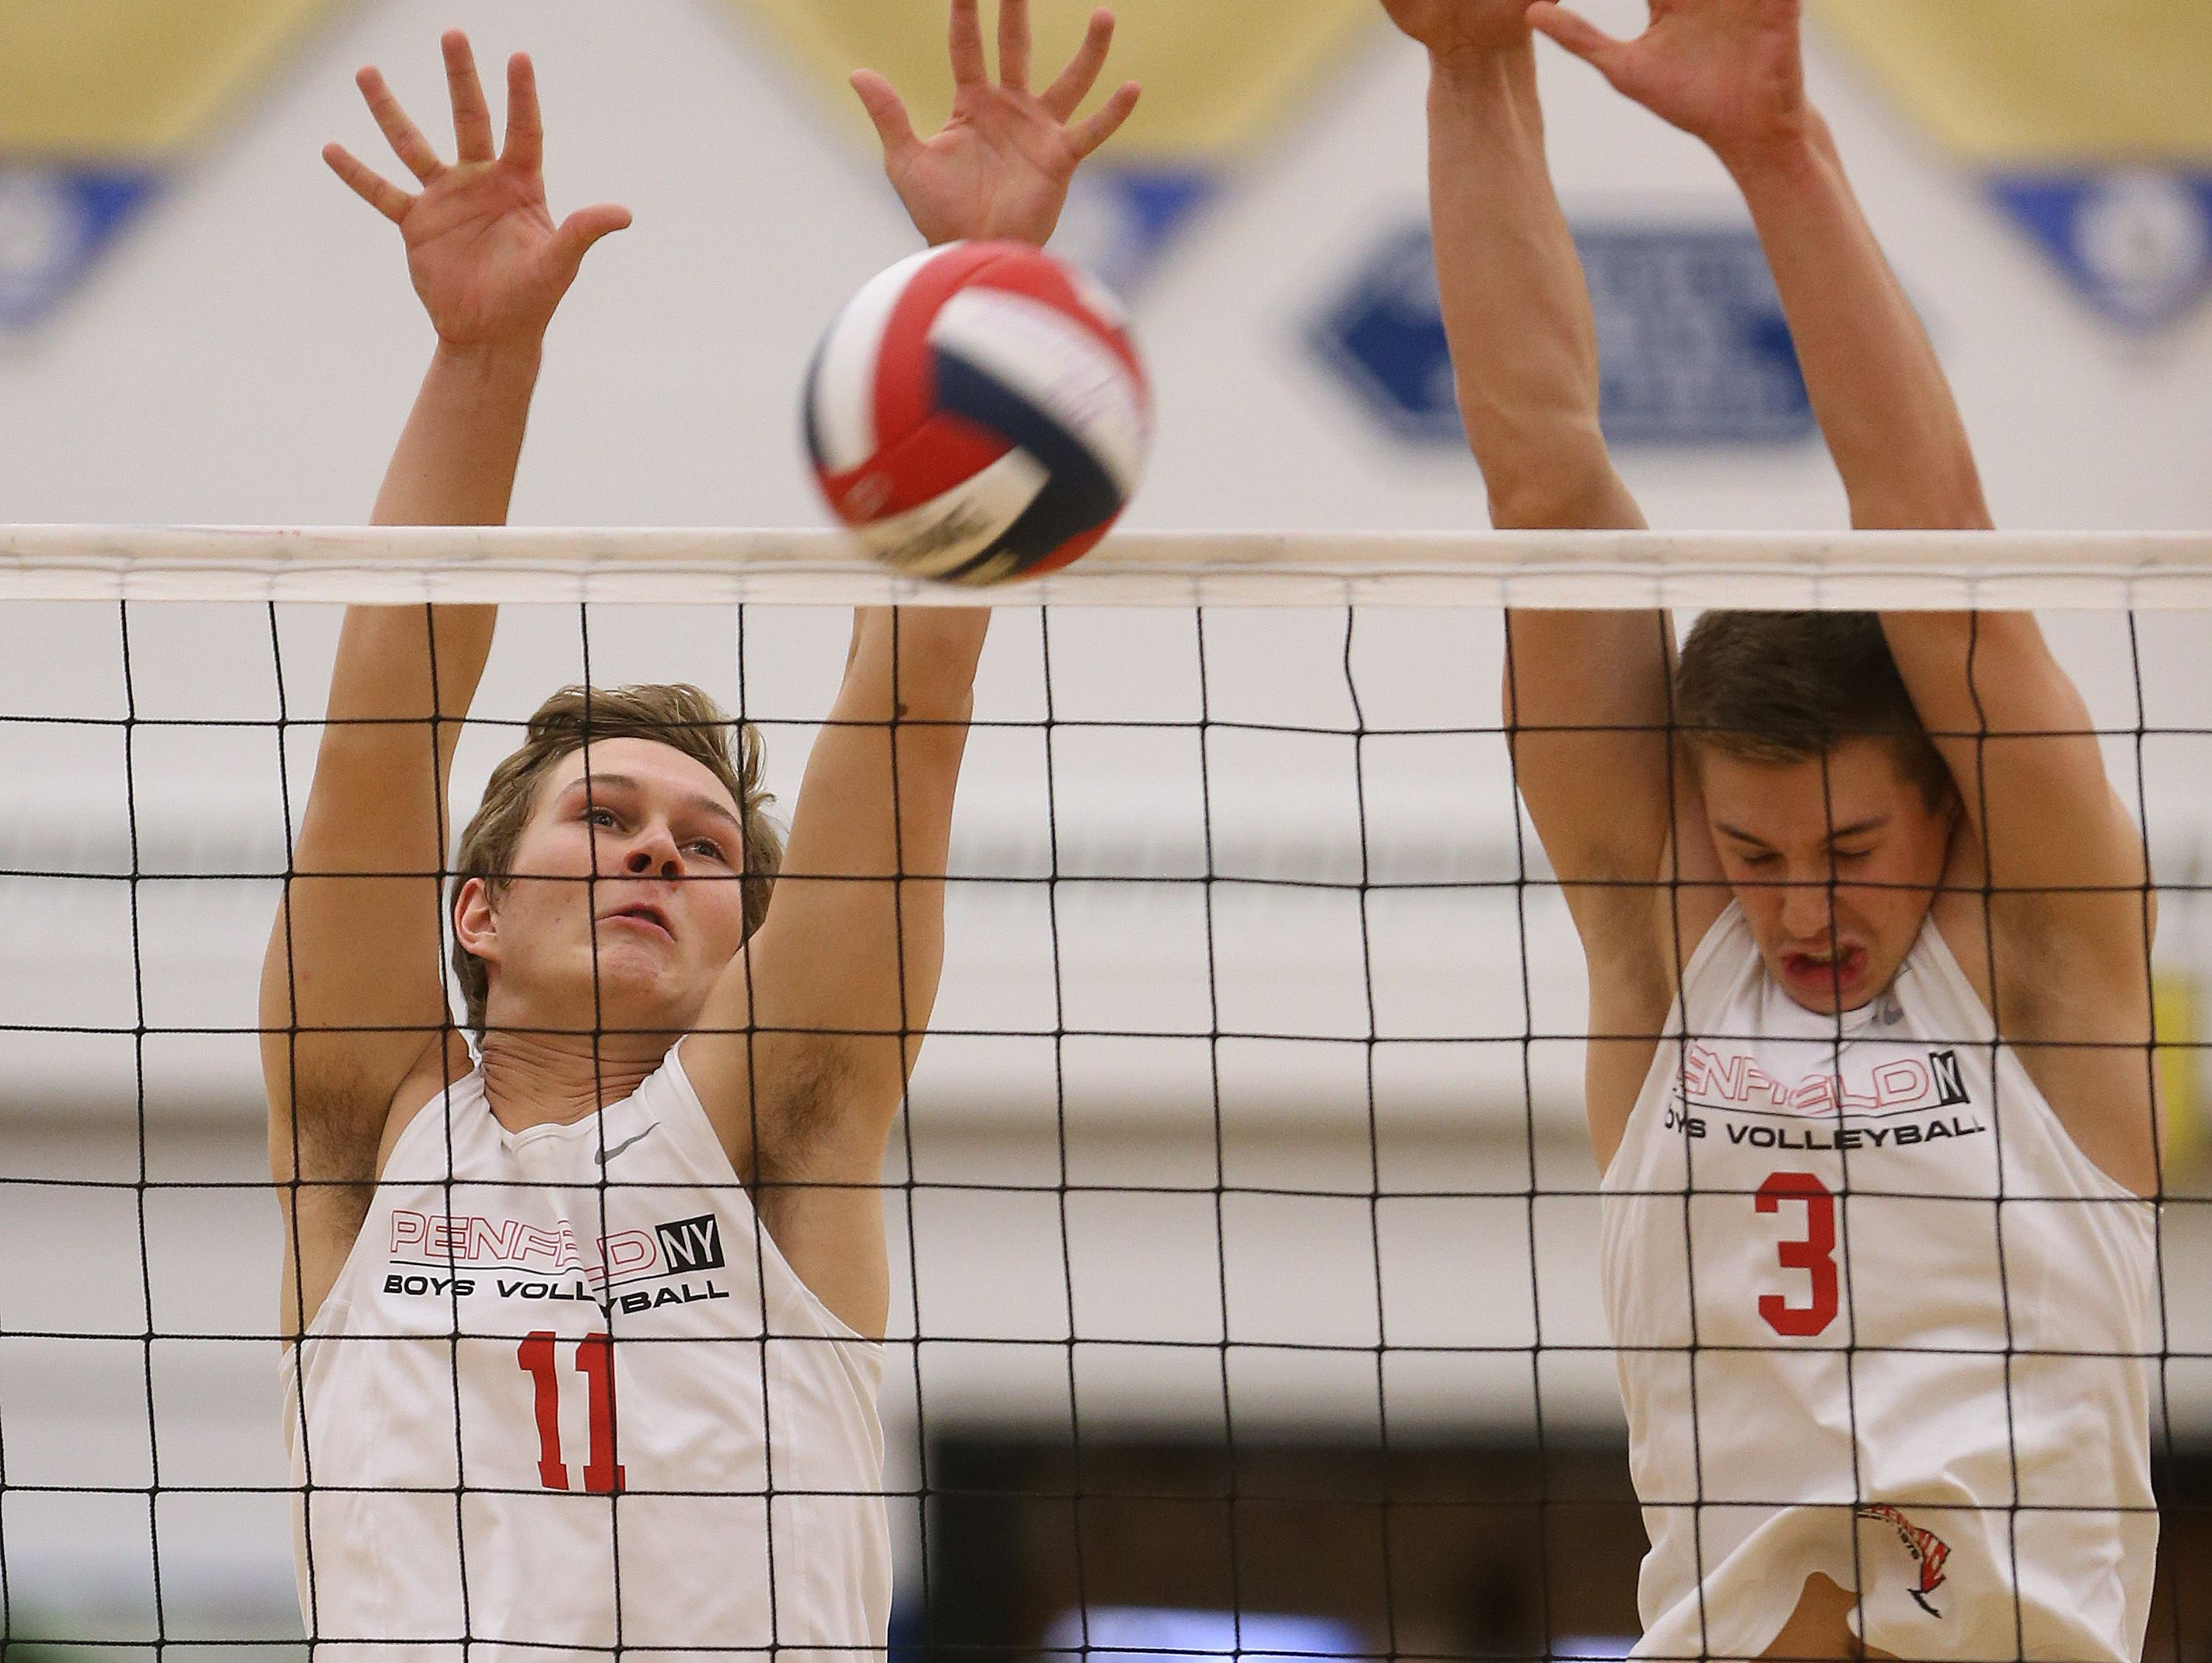 Penfield's Jack Burke (11) and Danny Marcy (3) go up for the block against McQuaid in the Class A final.